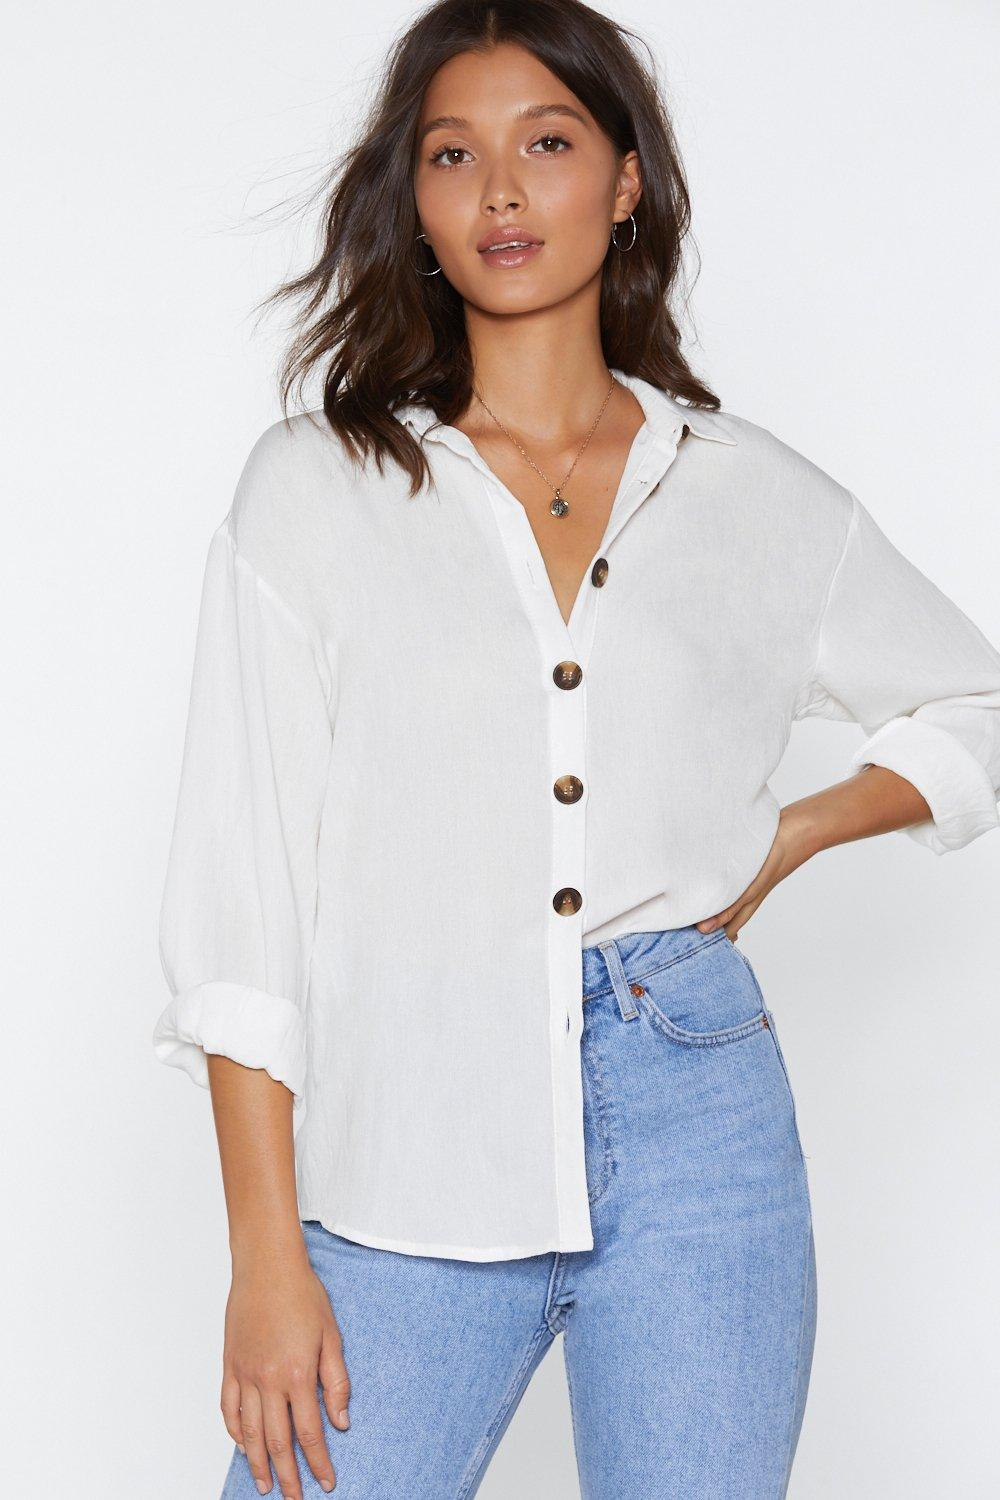 4dbc9a41bb Relax Babe Button Shirt. Hover to zoom